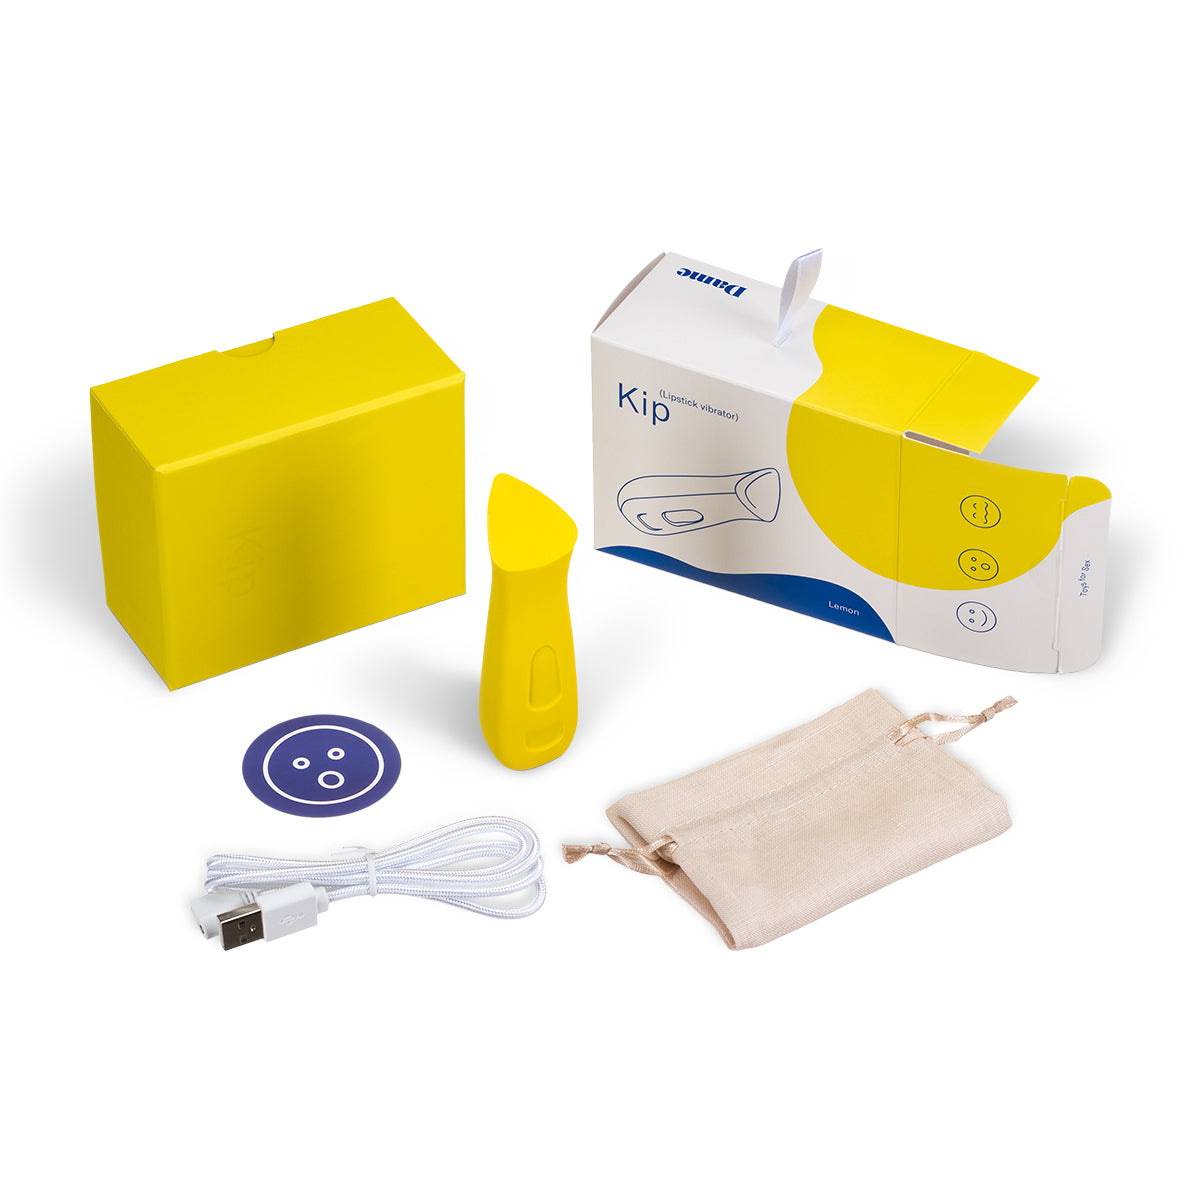 Kip Waterproof Rechargeable Lipstick Vibrator by Dame - Yellow with the box and its contents